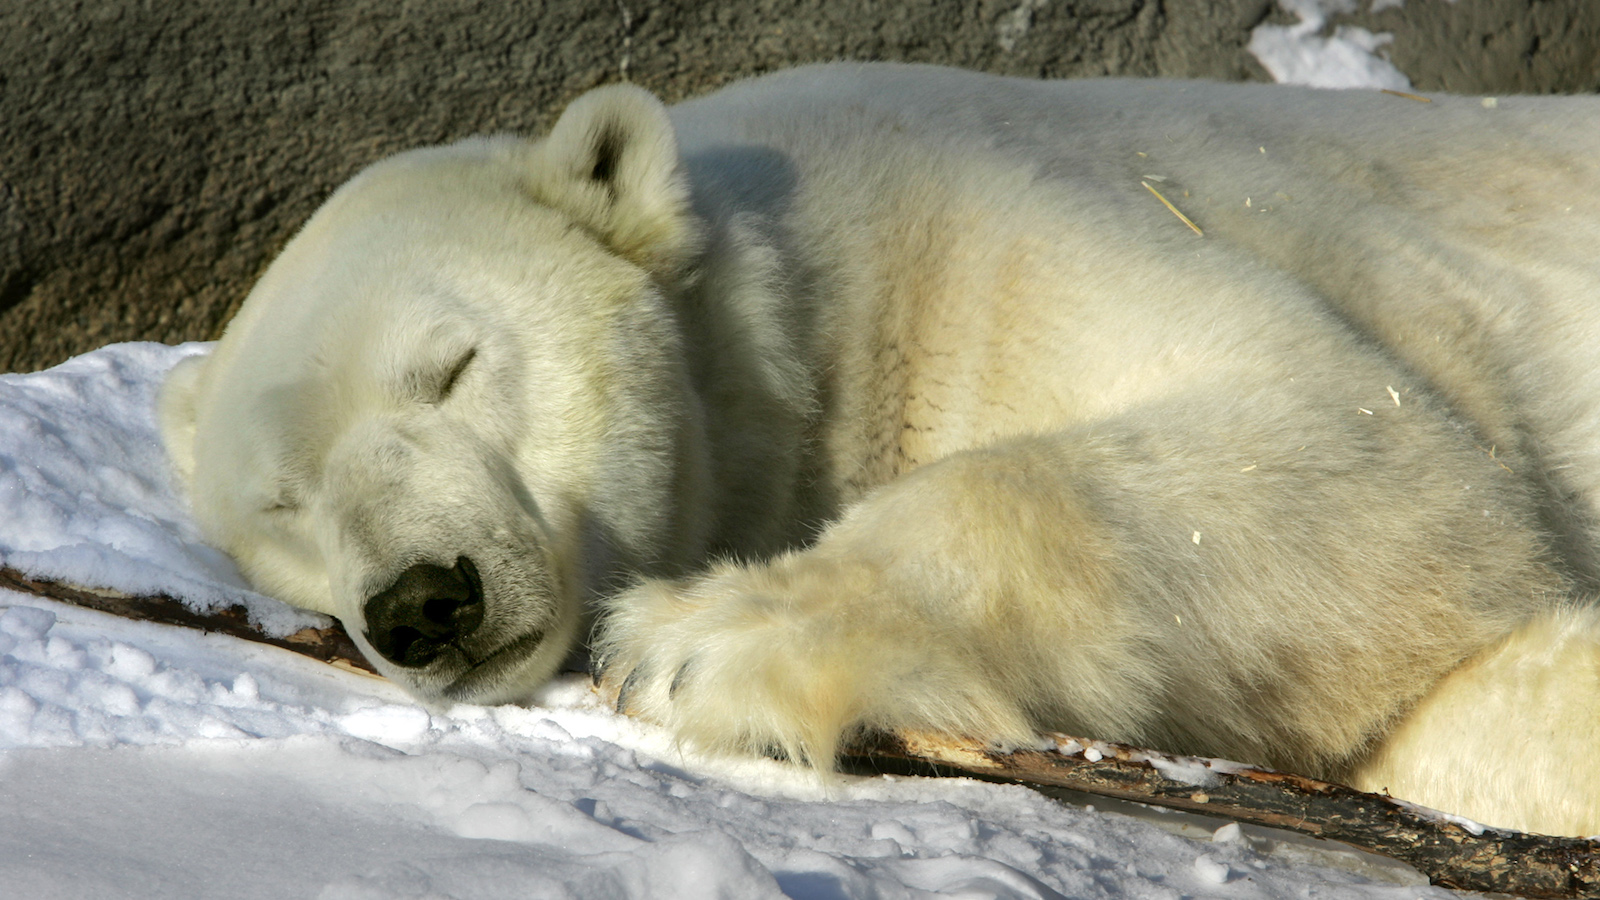 A Polar Bear sleeps on a bed of snow at the Cleveland Metroparks Zoo in Cleveland, Ohio Wednesday, Dec. 7, 2005. (AP Photo/Amy Sancetta)